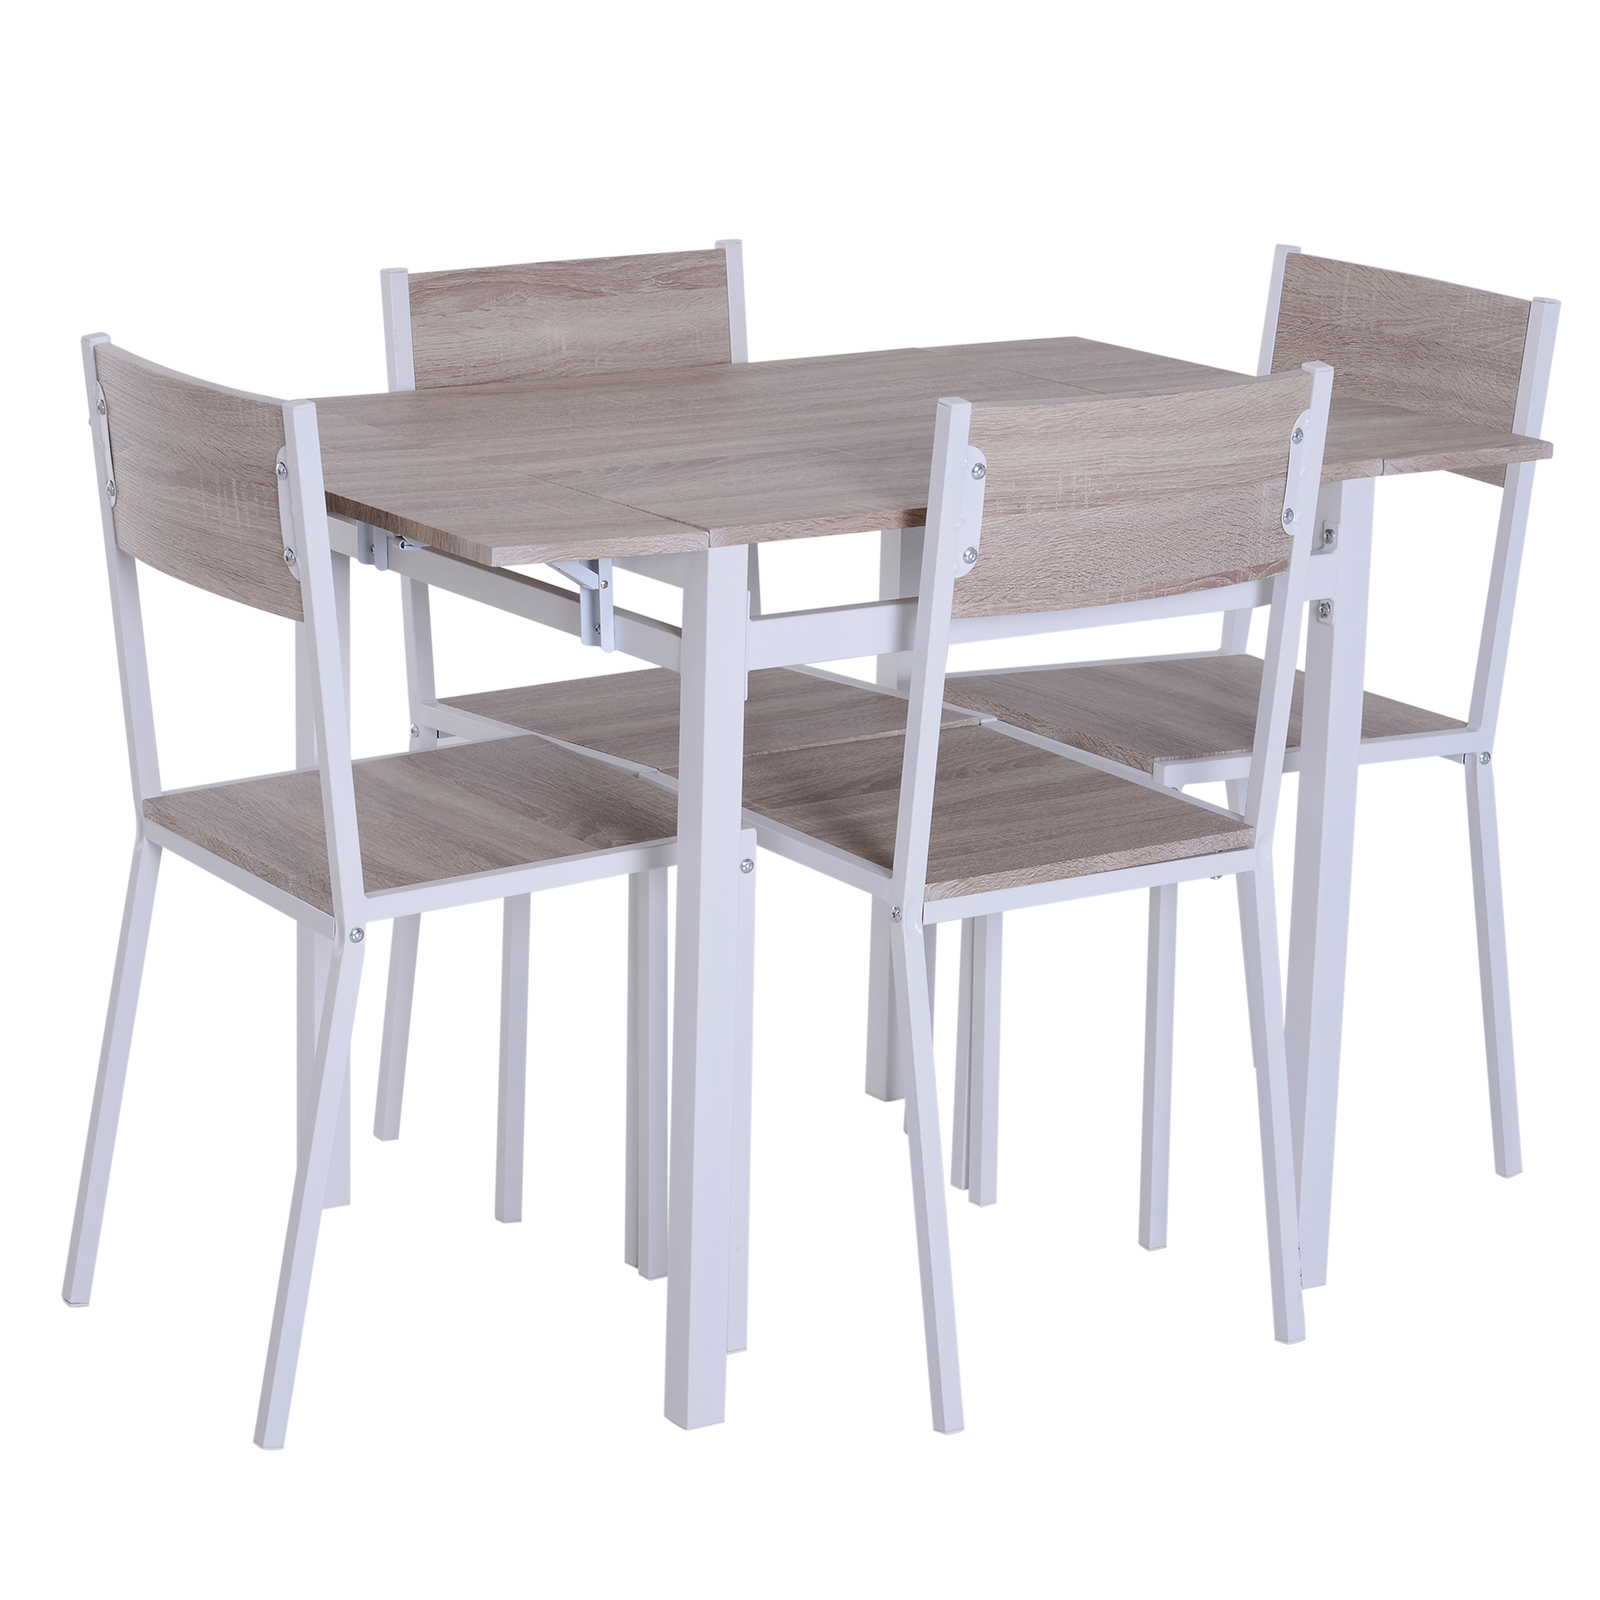 5-PC-Extending-Drop-Leaf-Counter-Height-Dining-Set-Table-amp-4-Chairs-Kitchen thumbnail 5